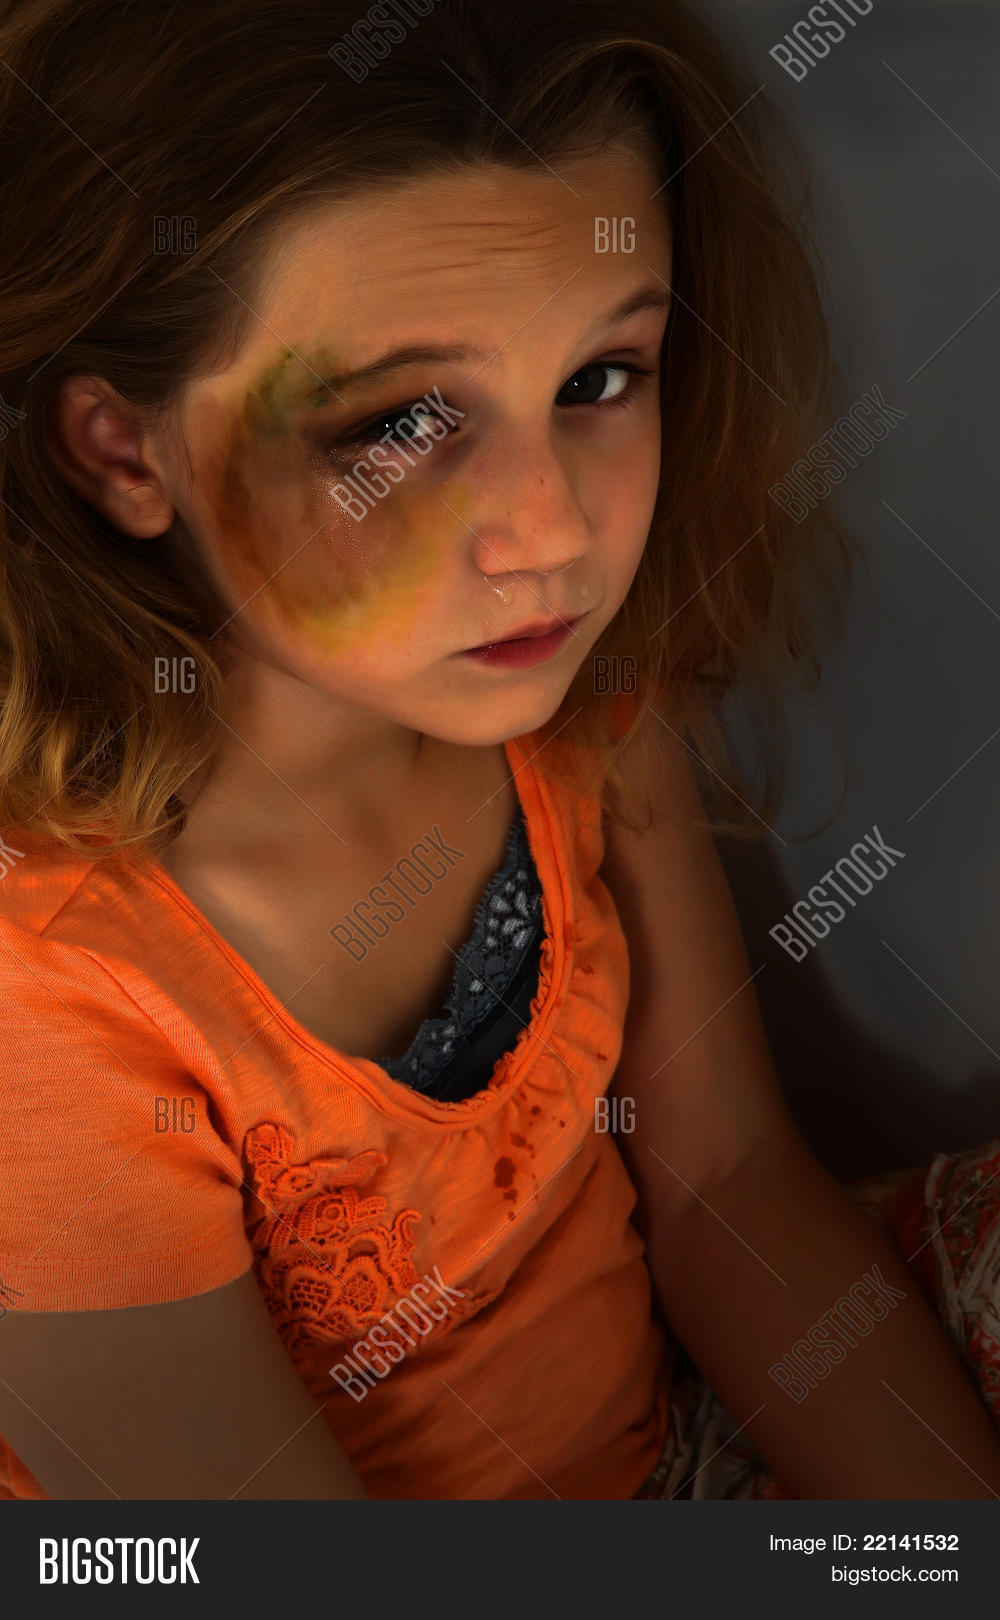 little girl abuse photo